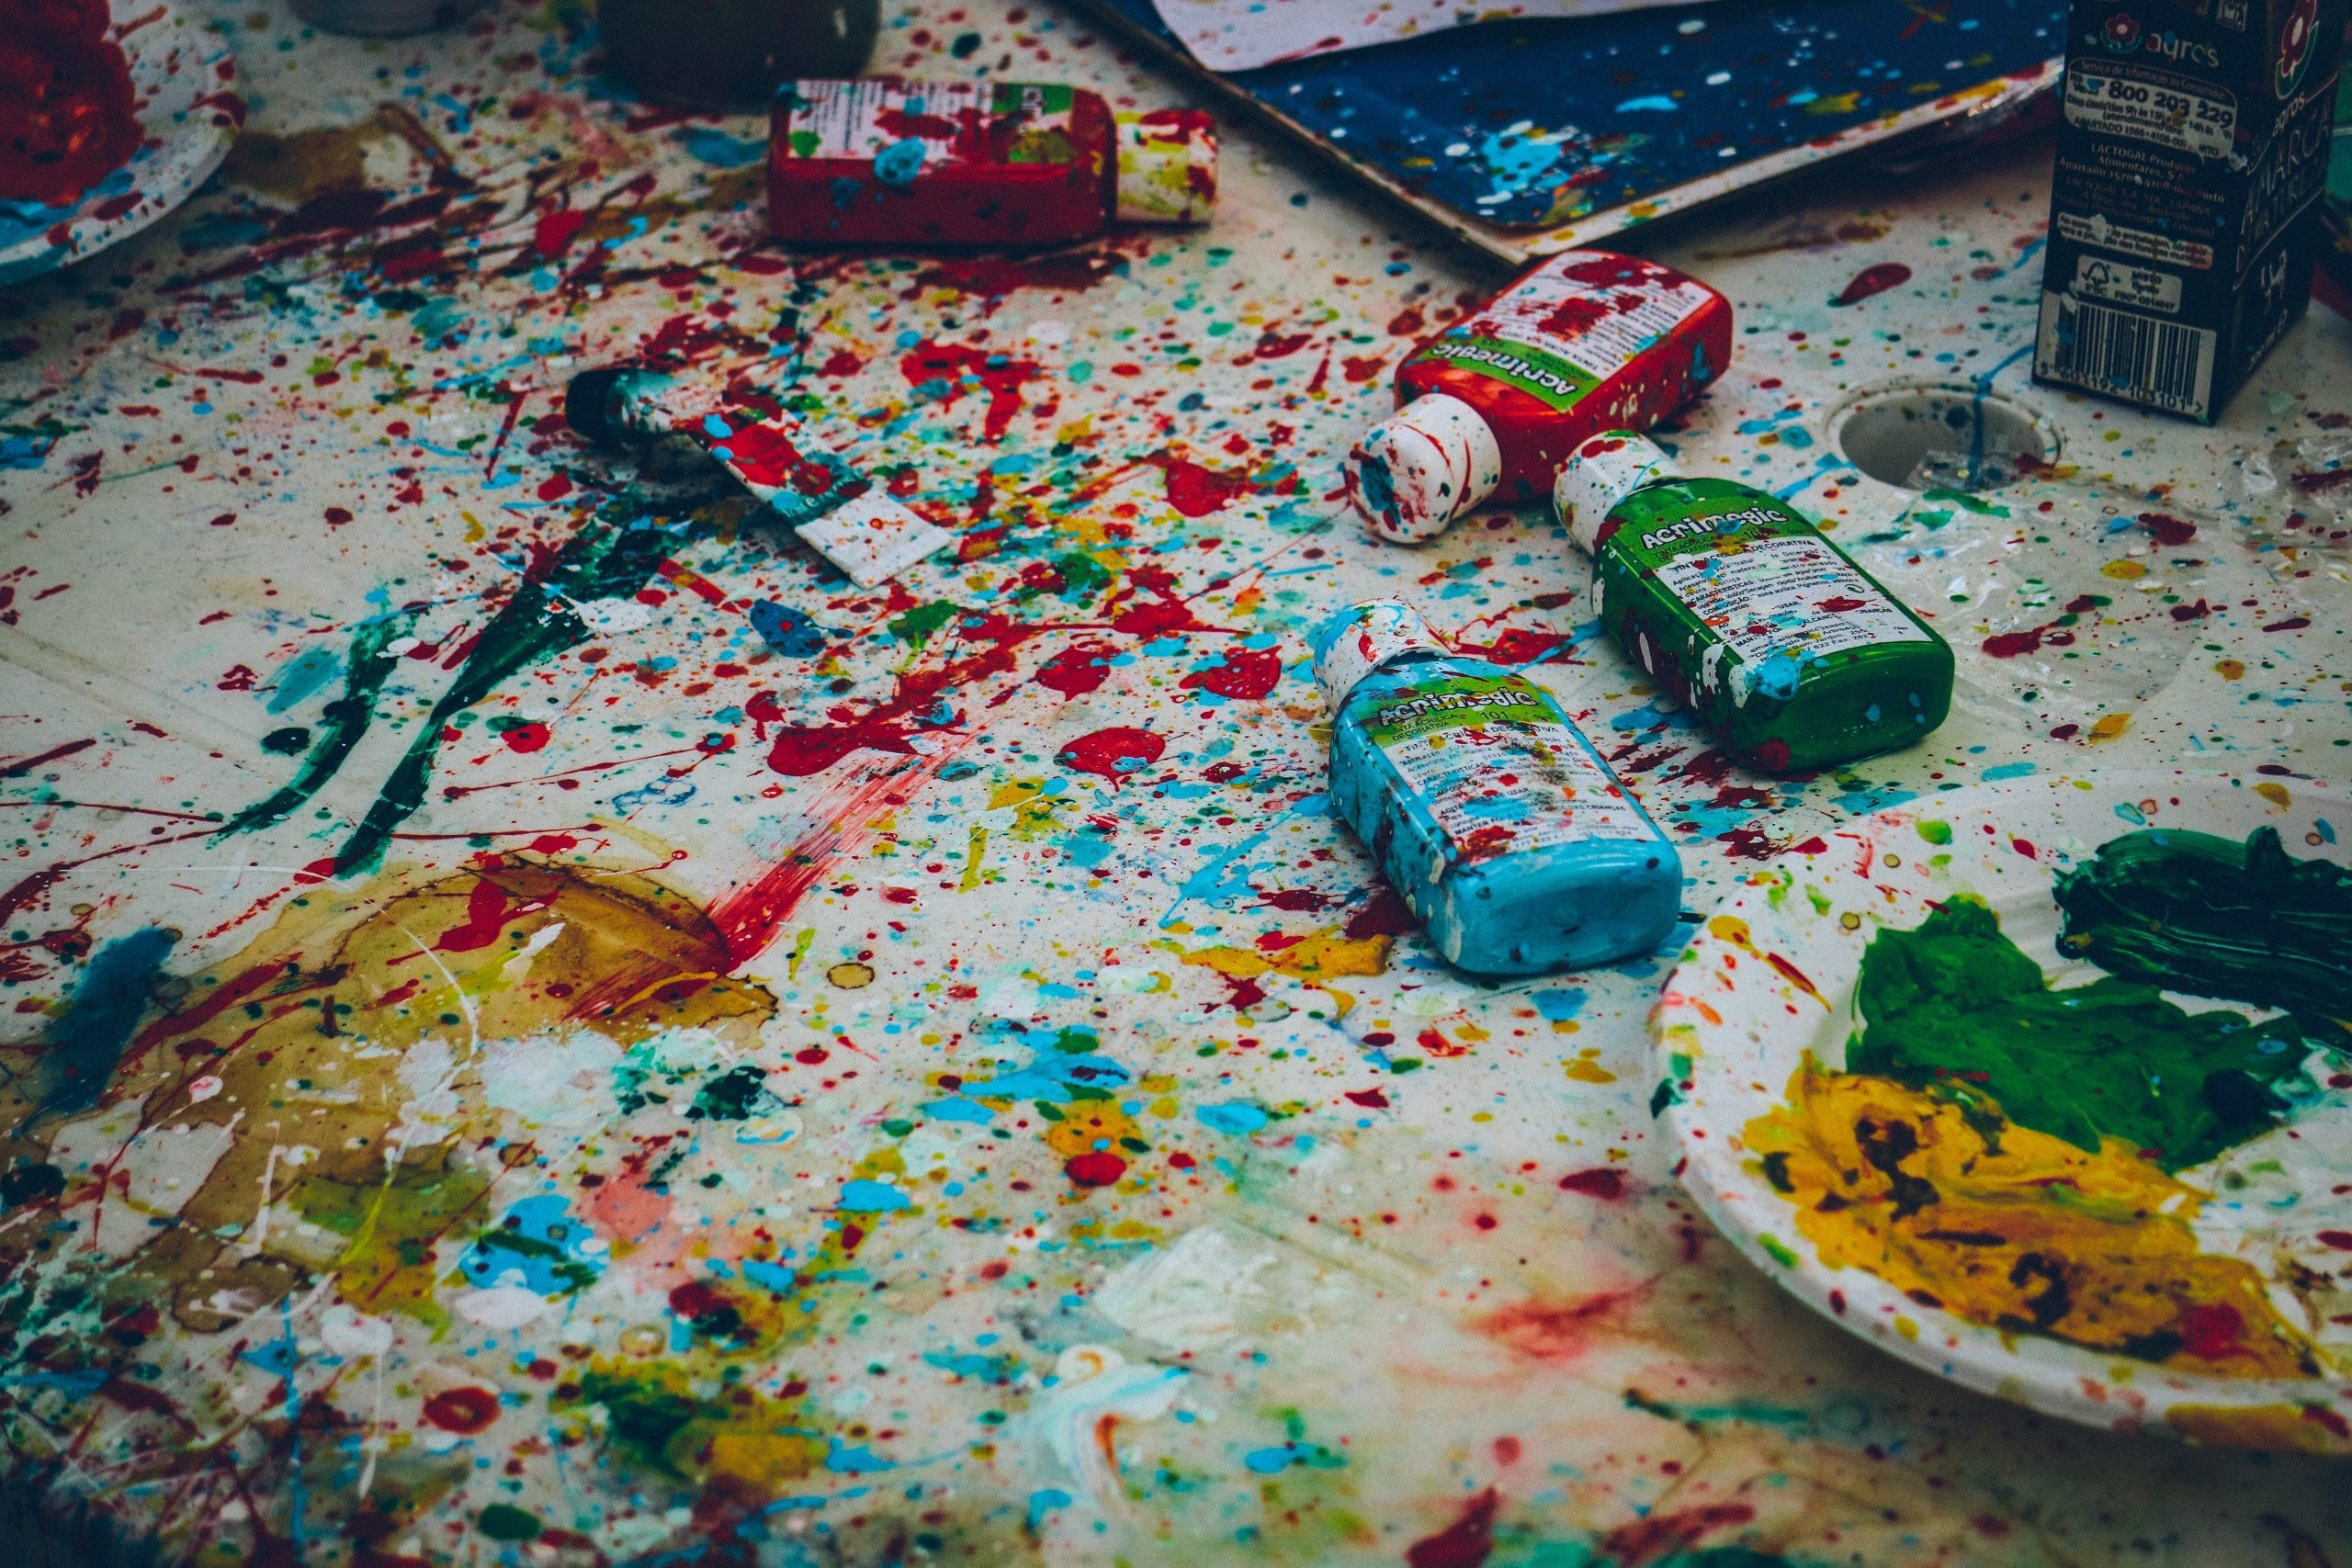 What is so beautiful about a mess?